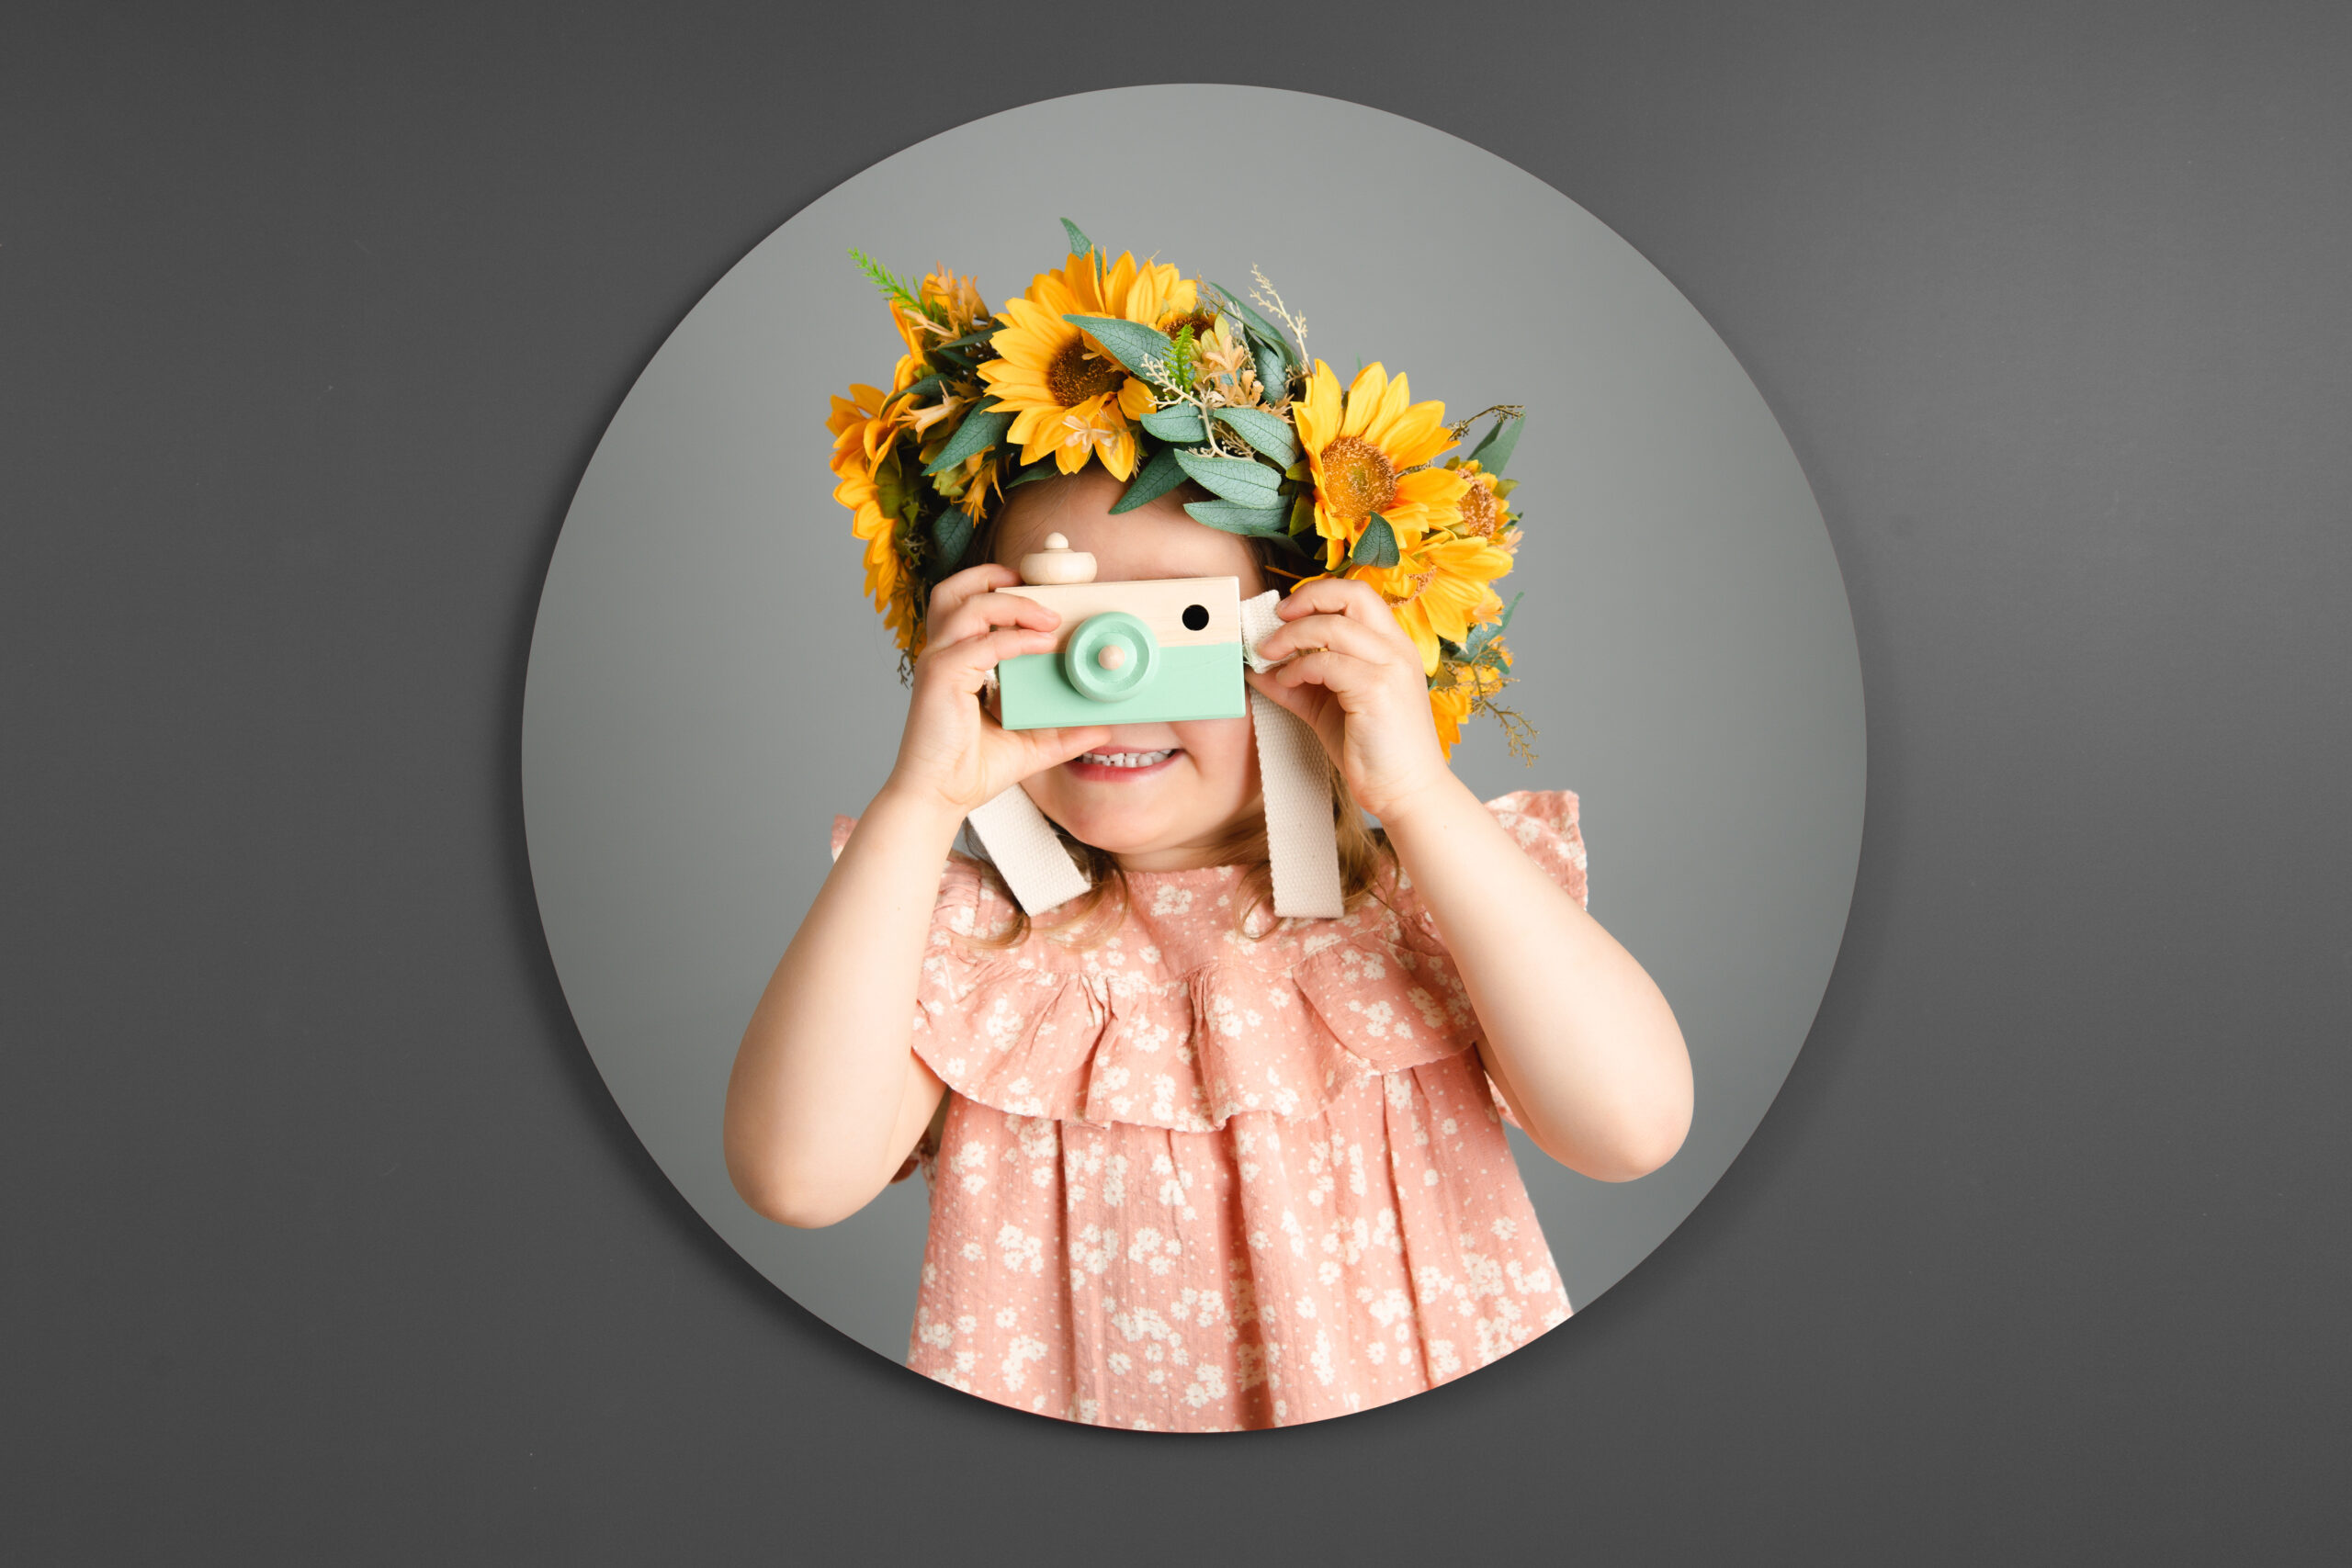 little girl on a grey background with sun flowers in her hair and a toy camera